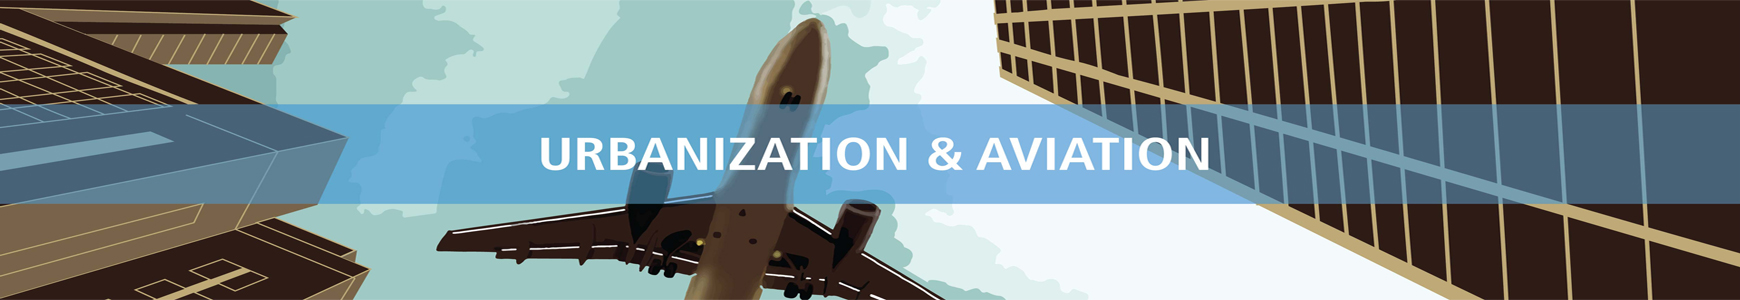 aviation urbanism